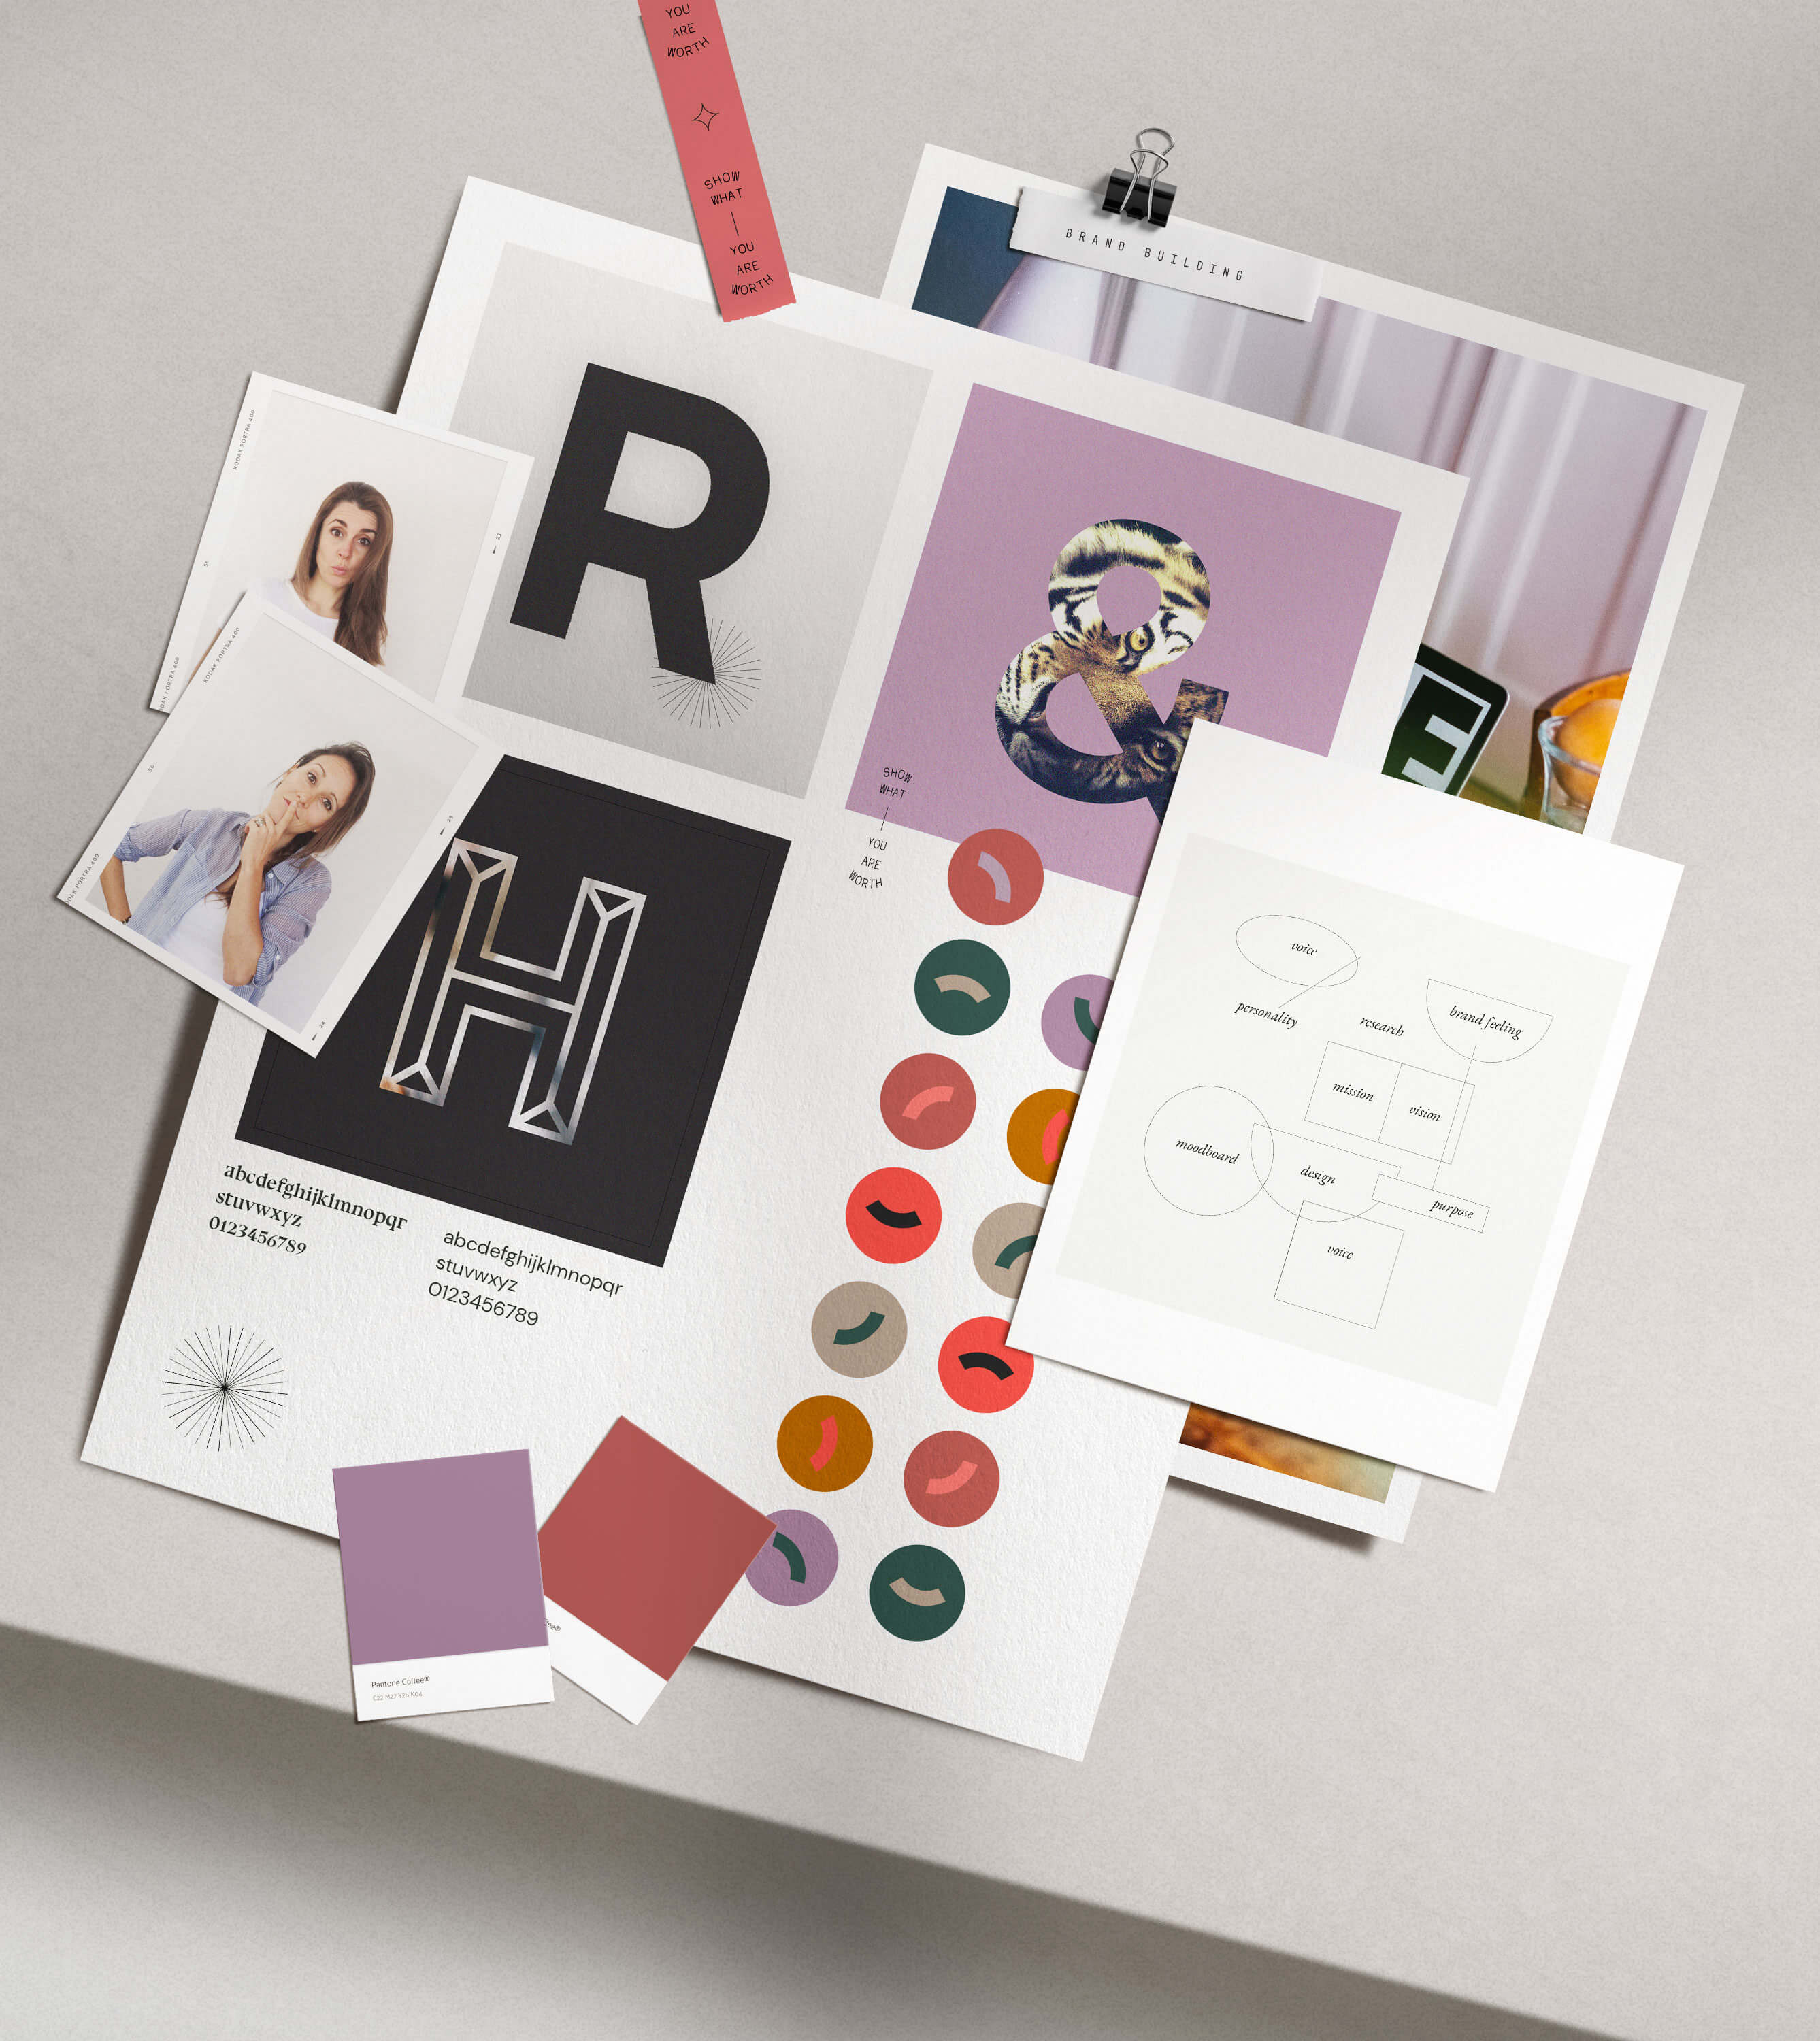 Brand elements collage